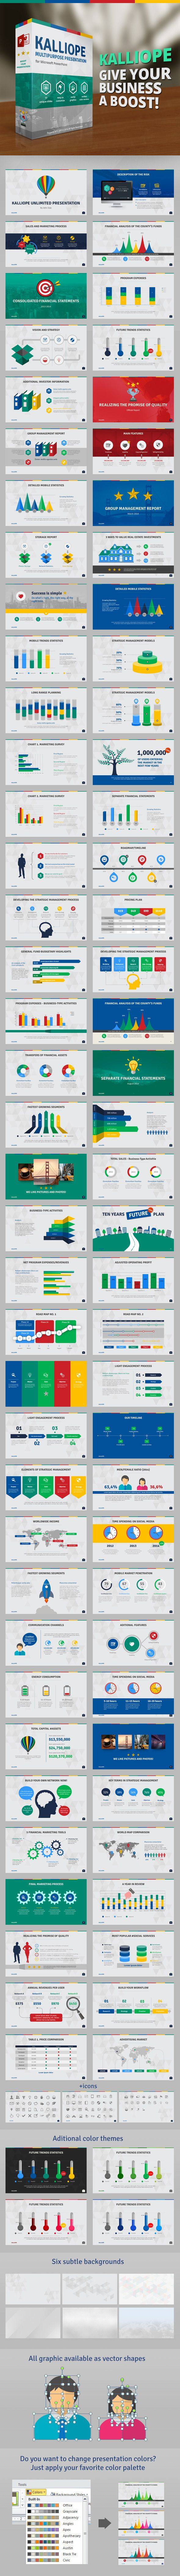 Kalliope PowerPoint Template  #presentation #social media #1920x1080 • Click here to download ! http://graphicriver.net/item/kalliope-powerpoint-template/9154573?s_rank=168&ref=pxcr